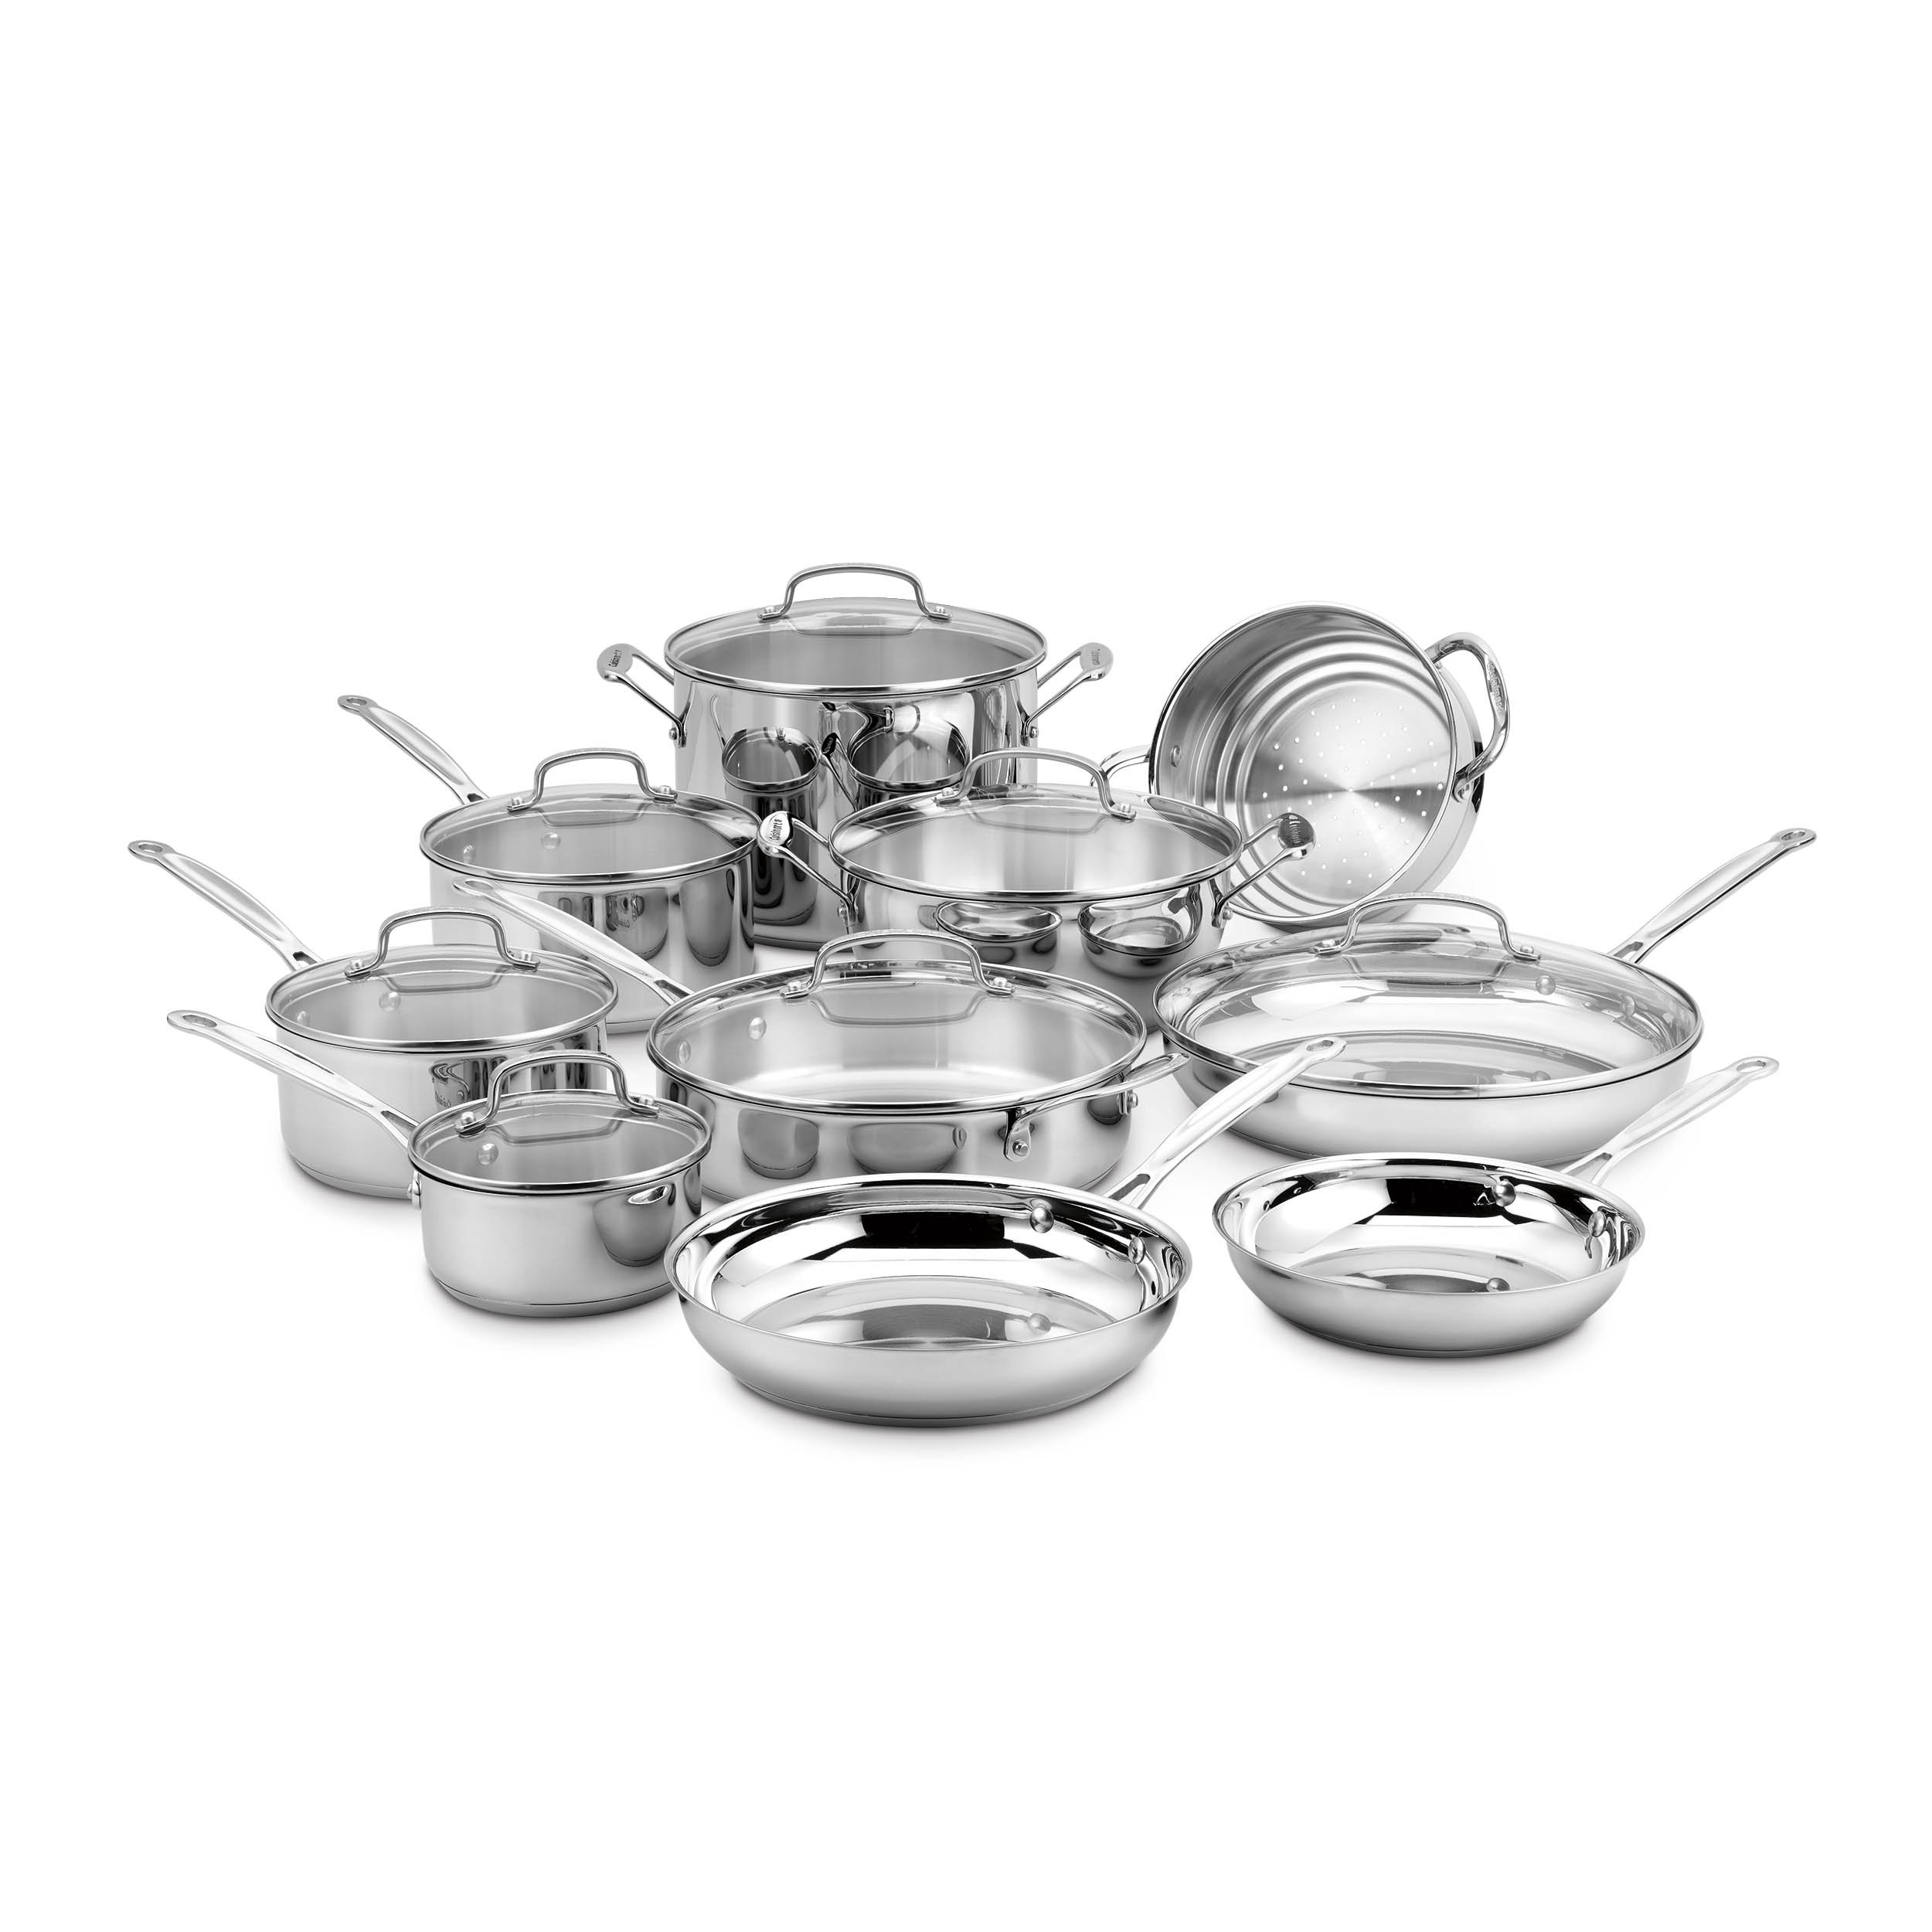 Cuisinart 77 17N Piece Classic Stainless